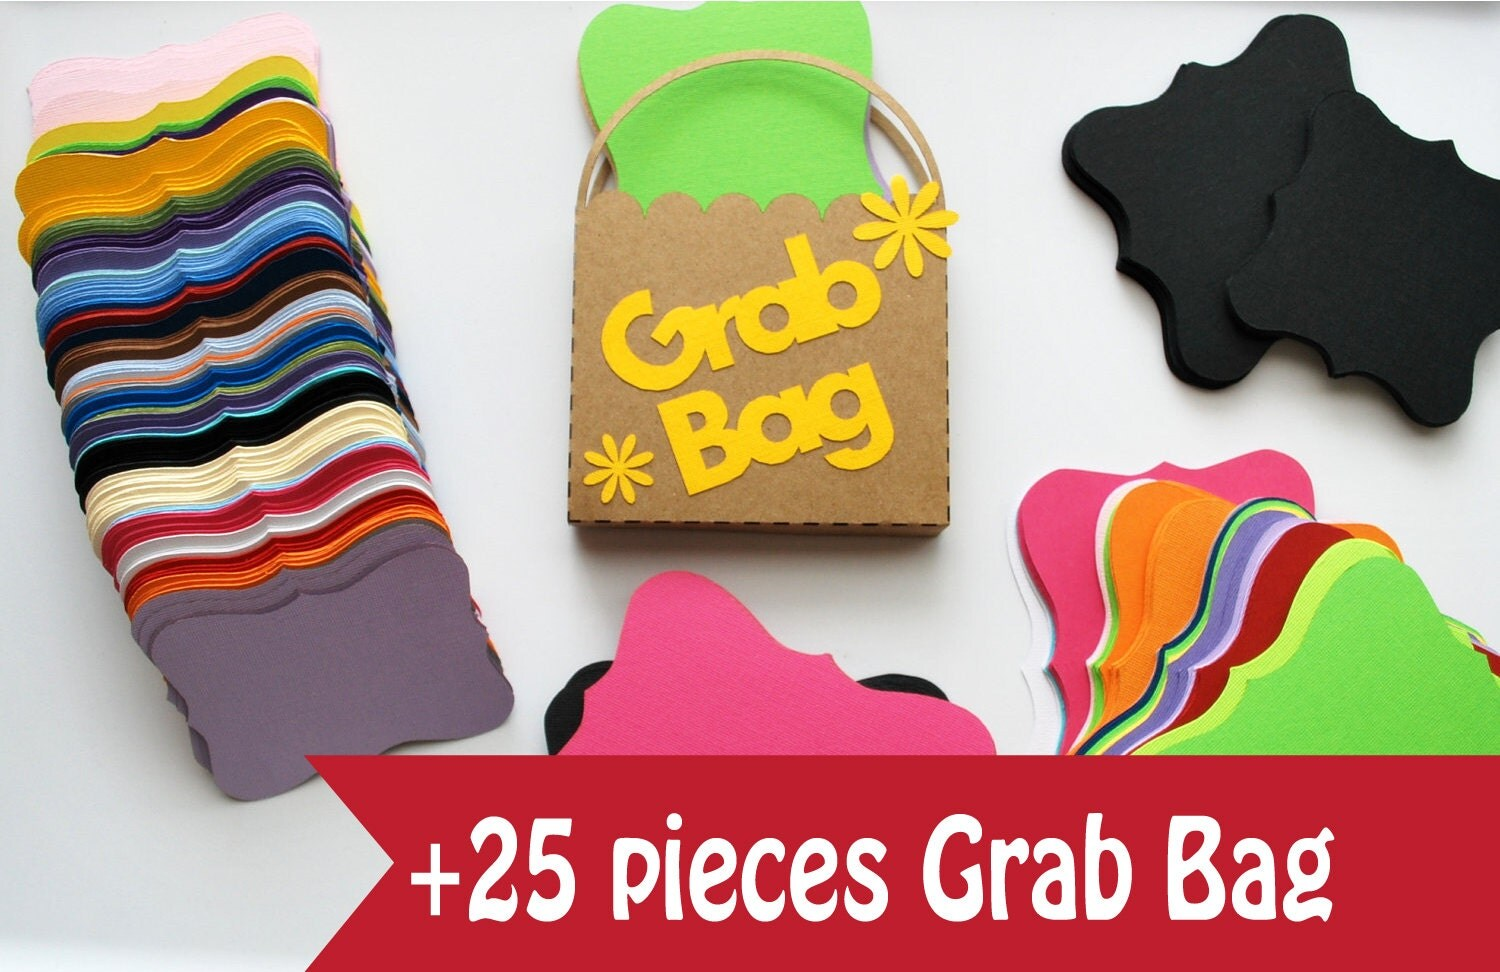 ON SALE Bracket Card Die cut Grab Bag, Cardstock Die Cut Pack Grab Bag, Assorted Scrapbooking Shapes, Colors & Sizes A229